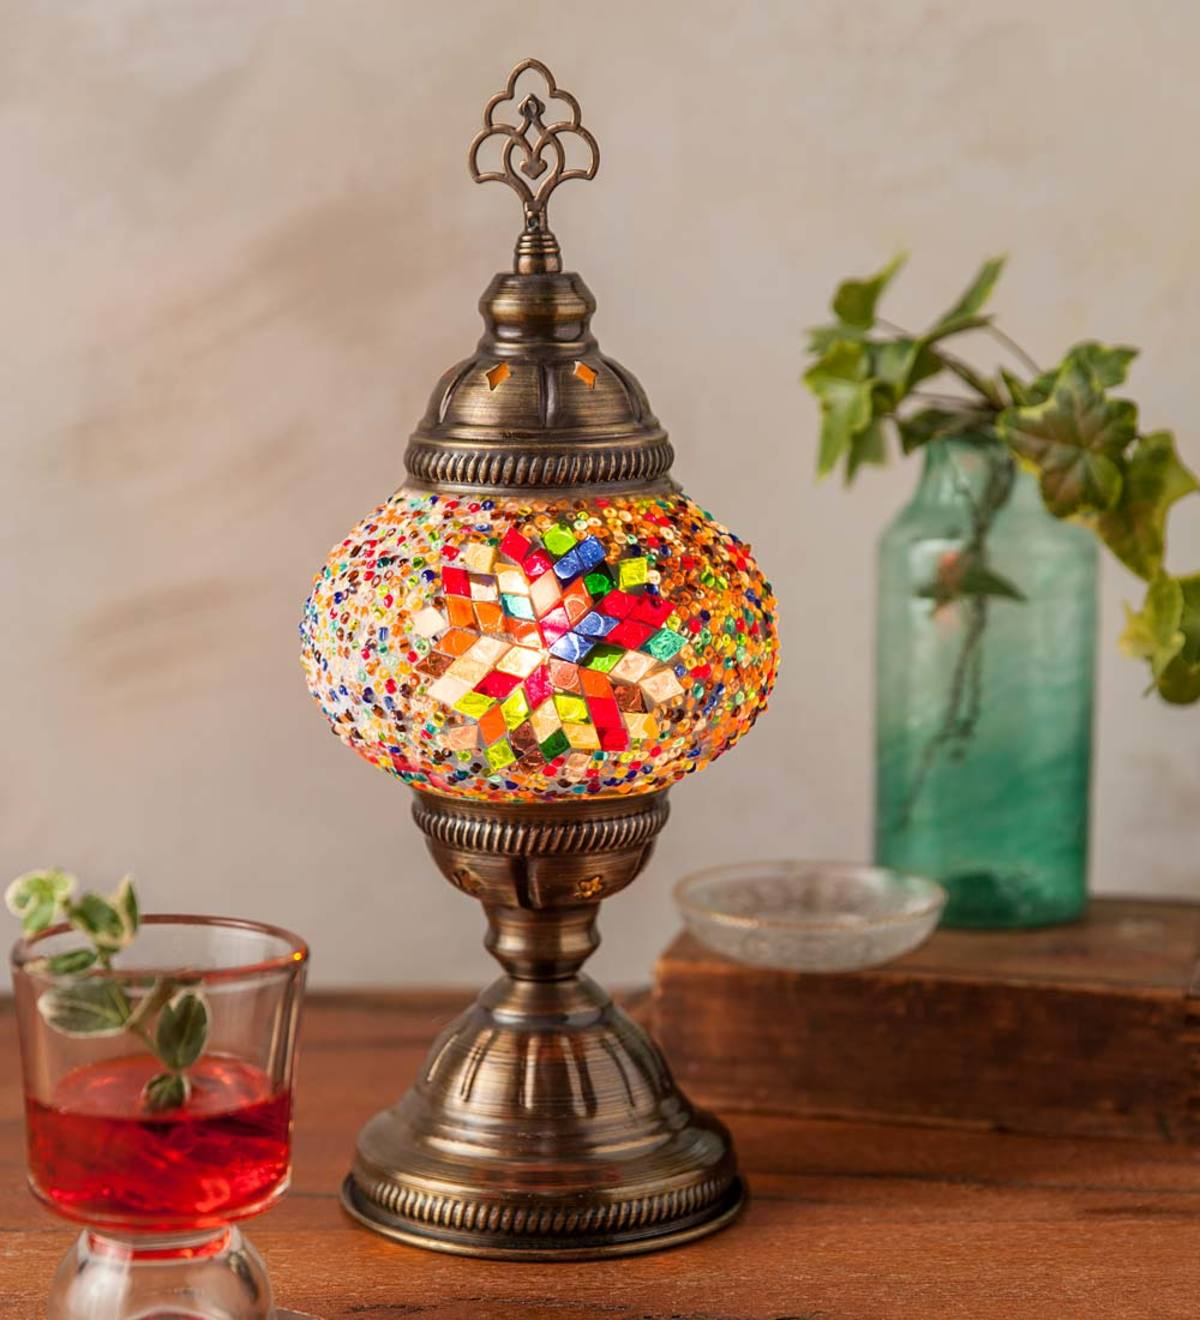 Handcrafted Turkish Glass Mosaic Lamp